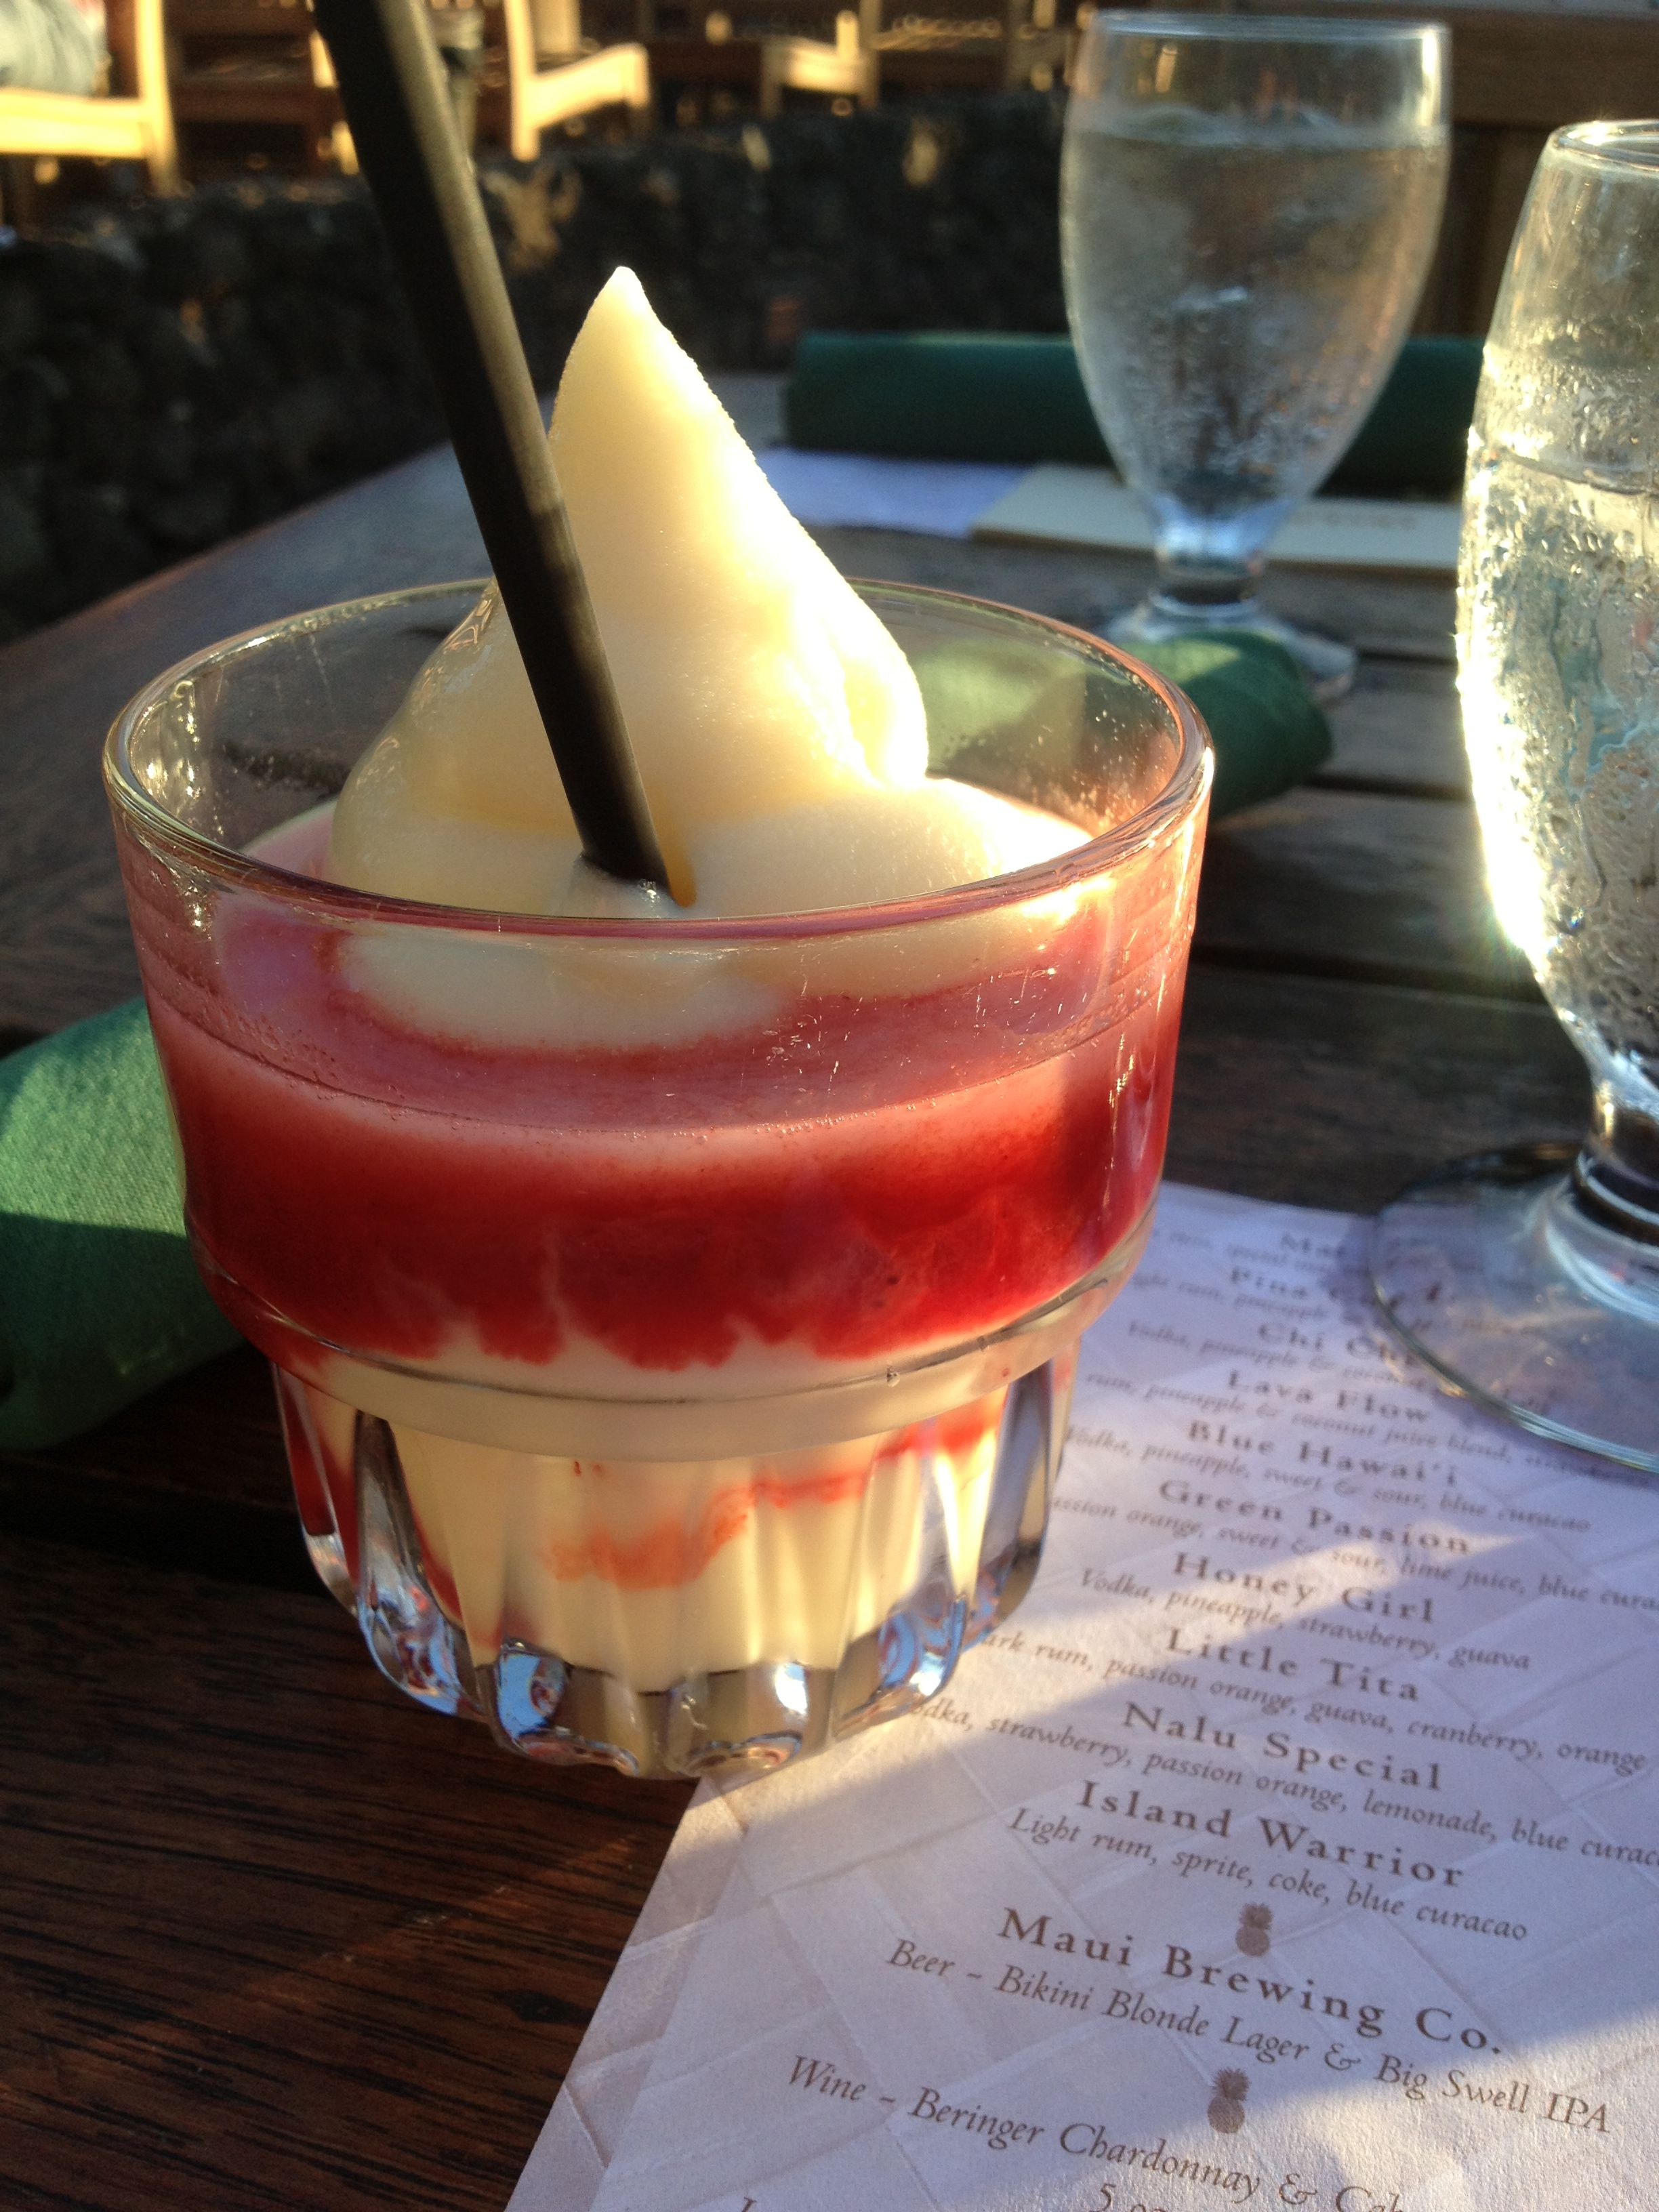 Virgin Lava Drink At The Laui At The Old Lahina Laui These Were So Good And The Luau Was Cool Can T Wait To Go Back Luau Maui Destination Wedding